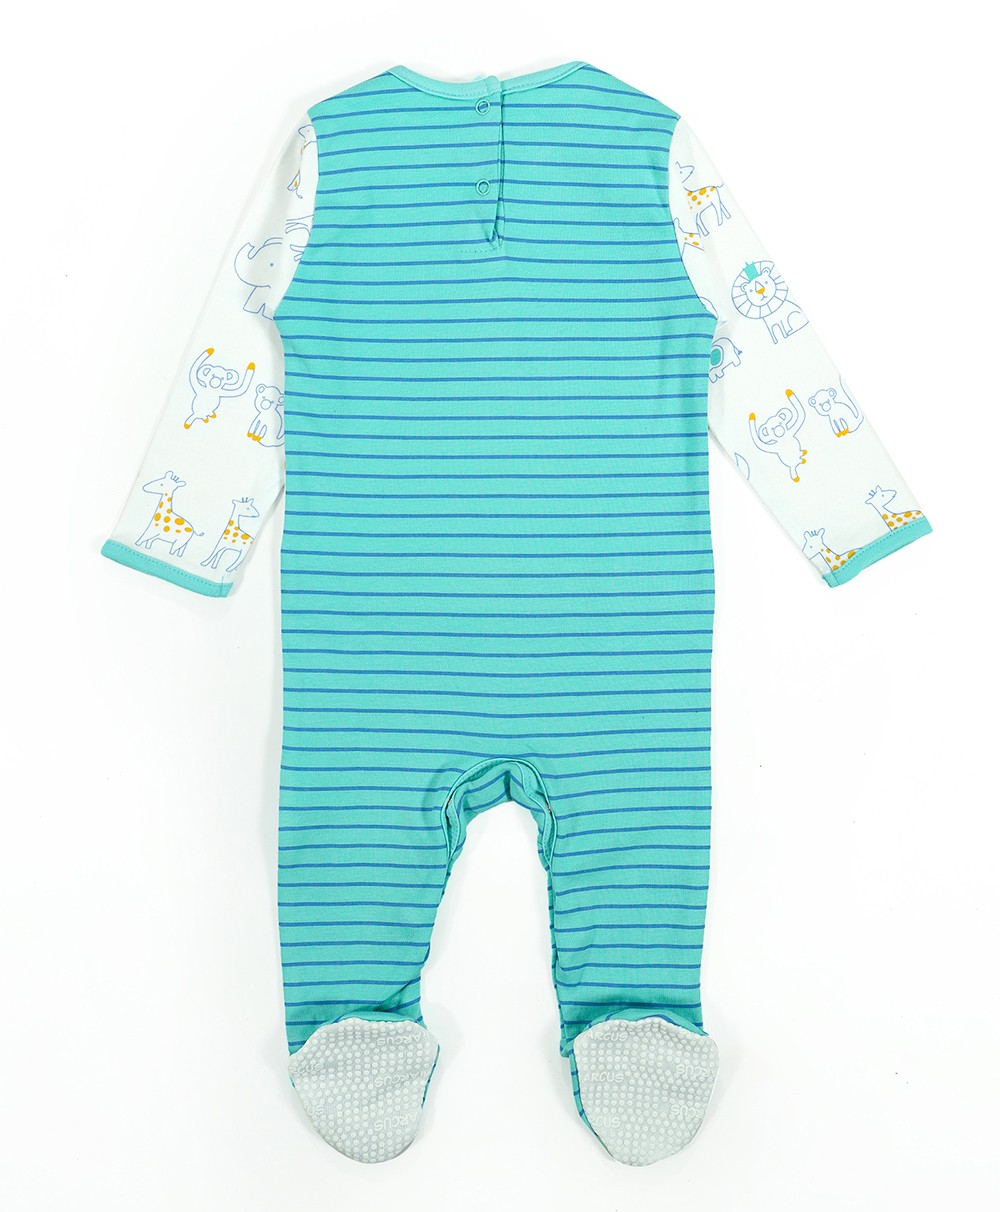 Comfy Knitted Sleep Suit - Safari (Pack of 3)